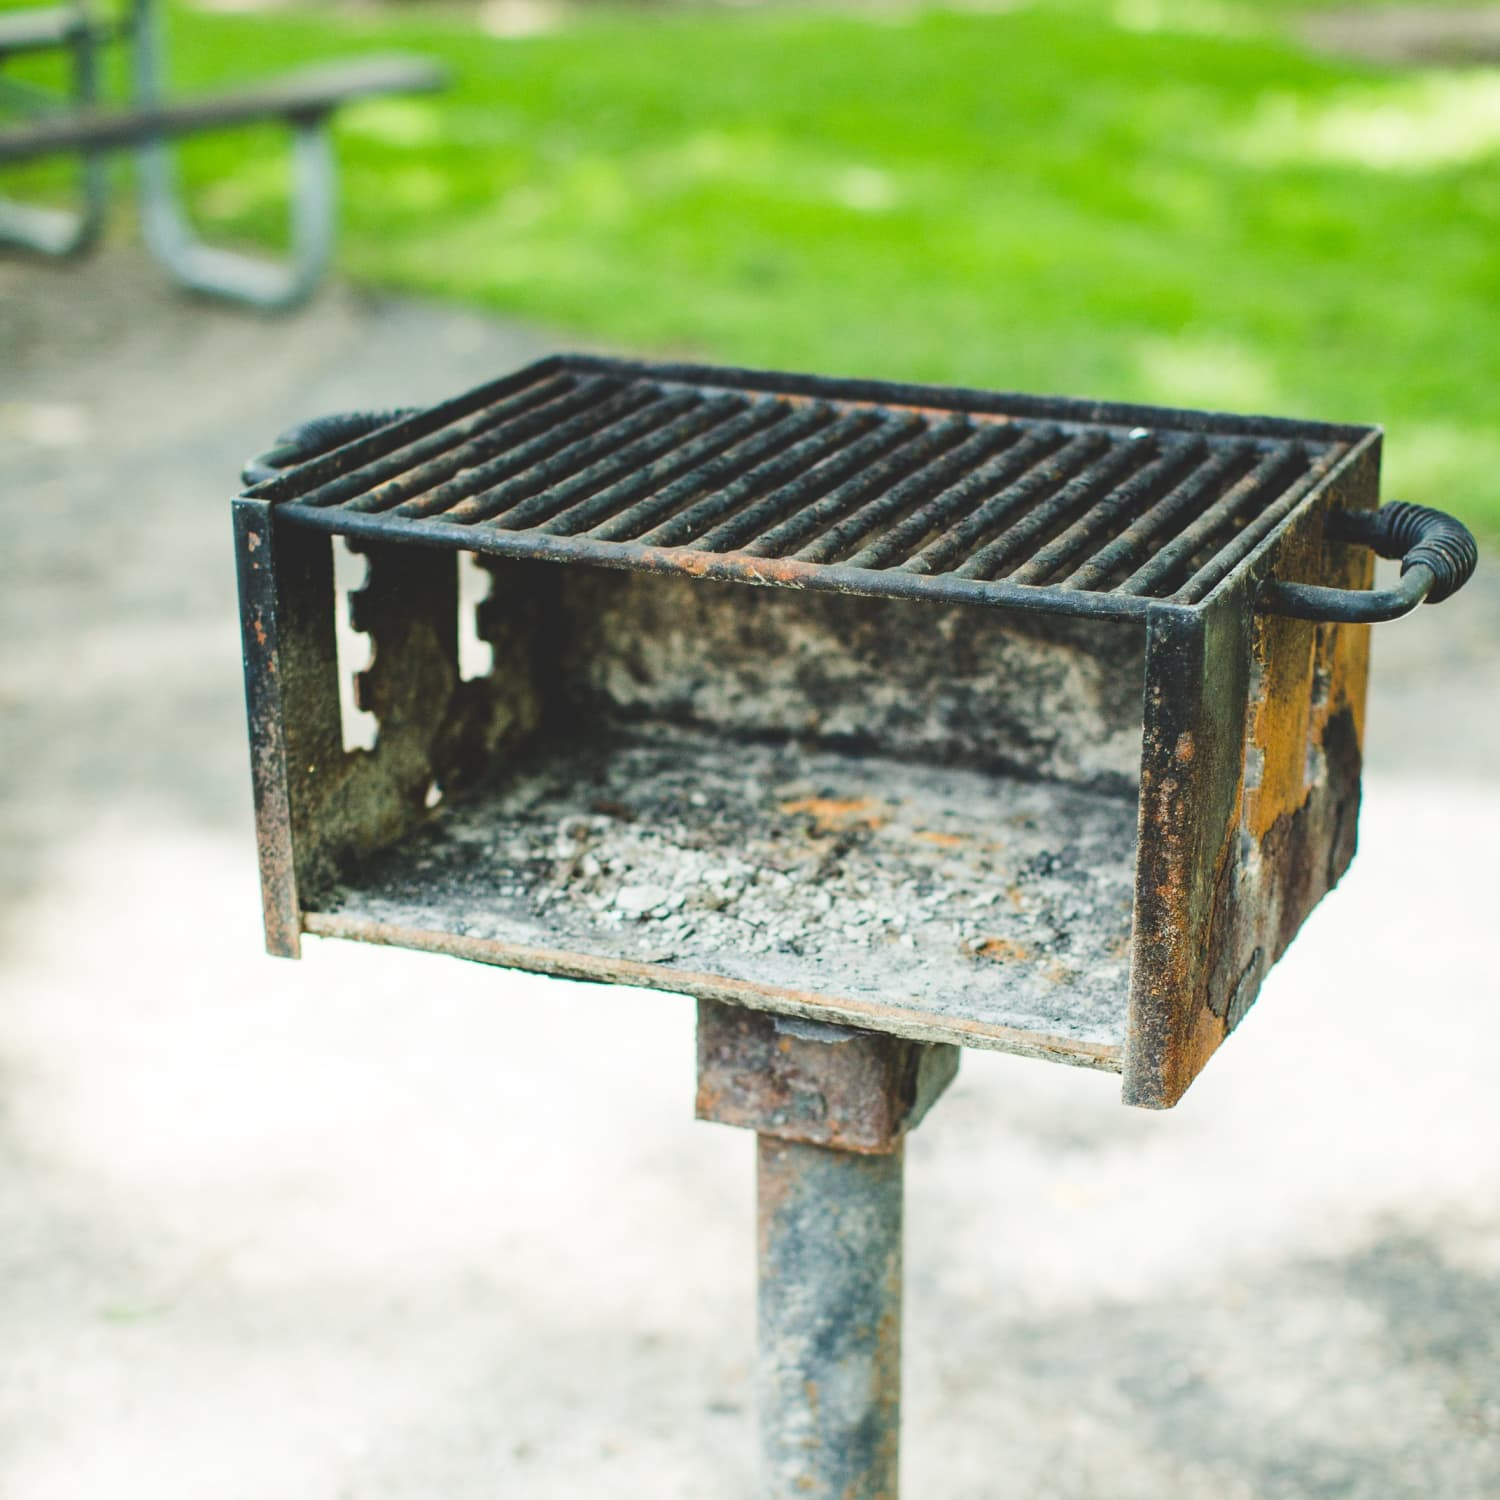 How To Clean a Charcoal Grill | Kitchn